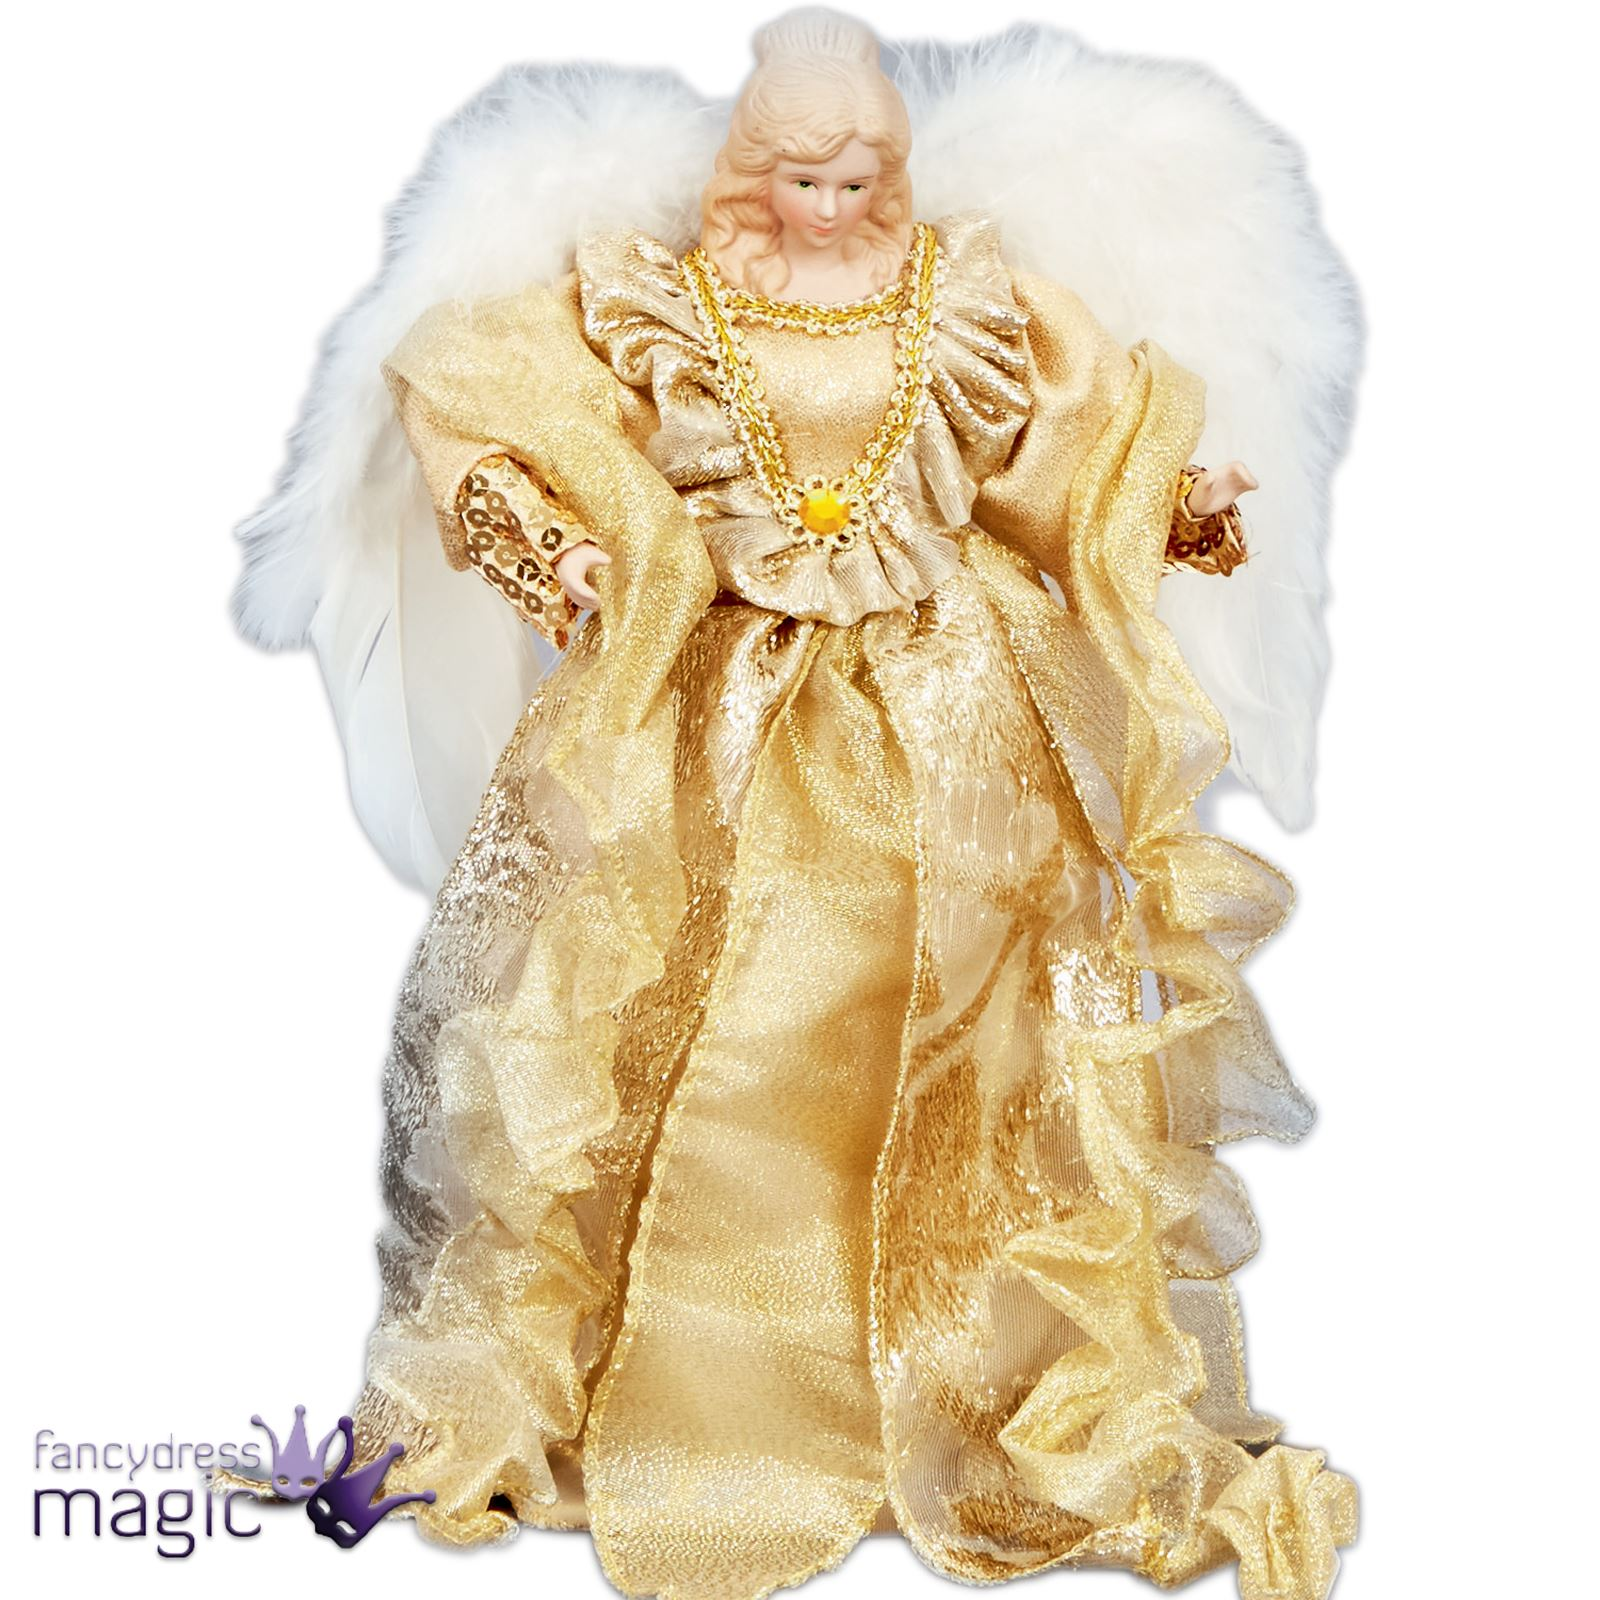 30cm deluxe tree topper top gold angel fairy christmas. Black Bedroom Furniture Sets. Home Design Ideas